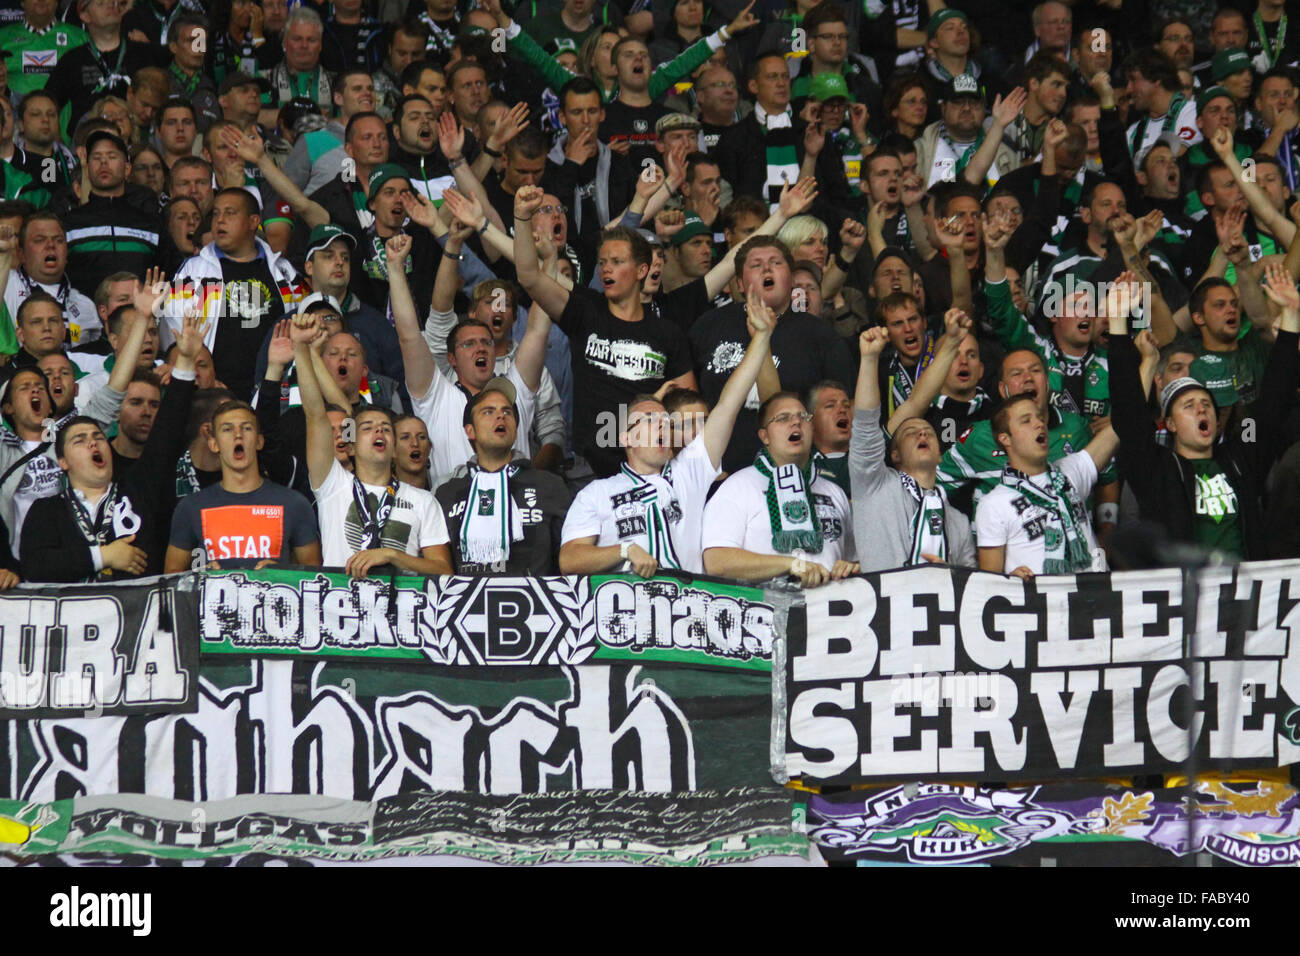 KYIV, UKRAINE - AUGUST 29, 2012: Borussia Monchengladbach team supporters show their support during UEFA Champions - Stock Image